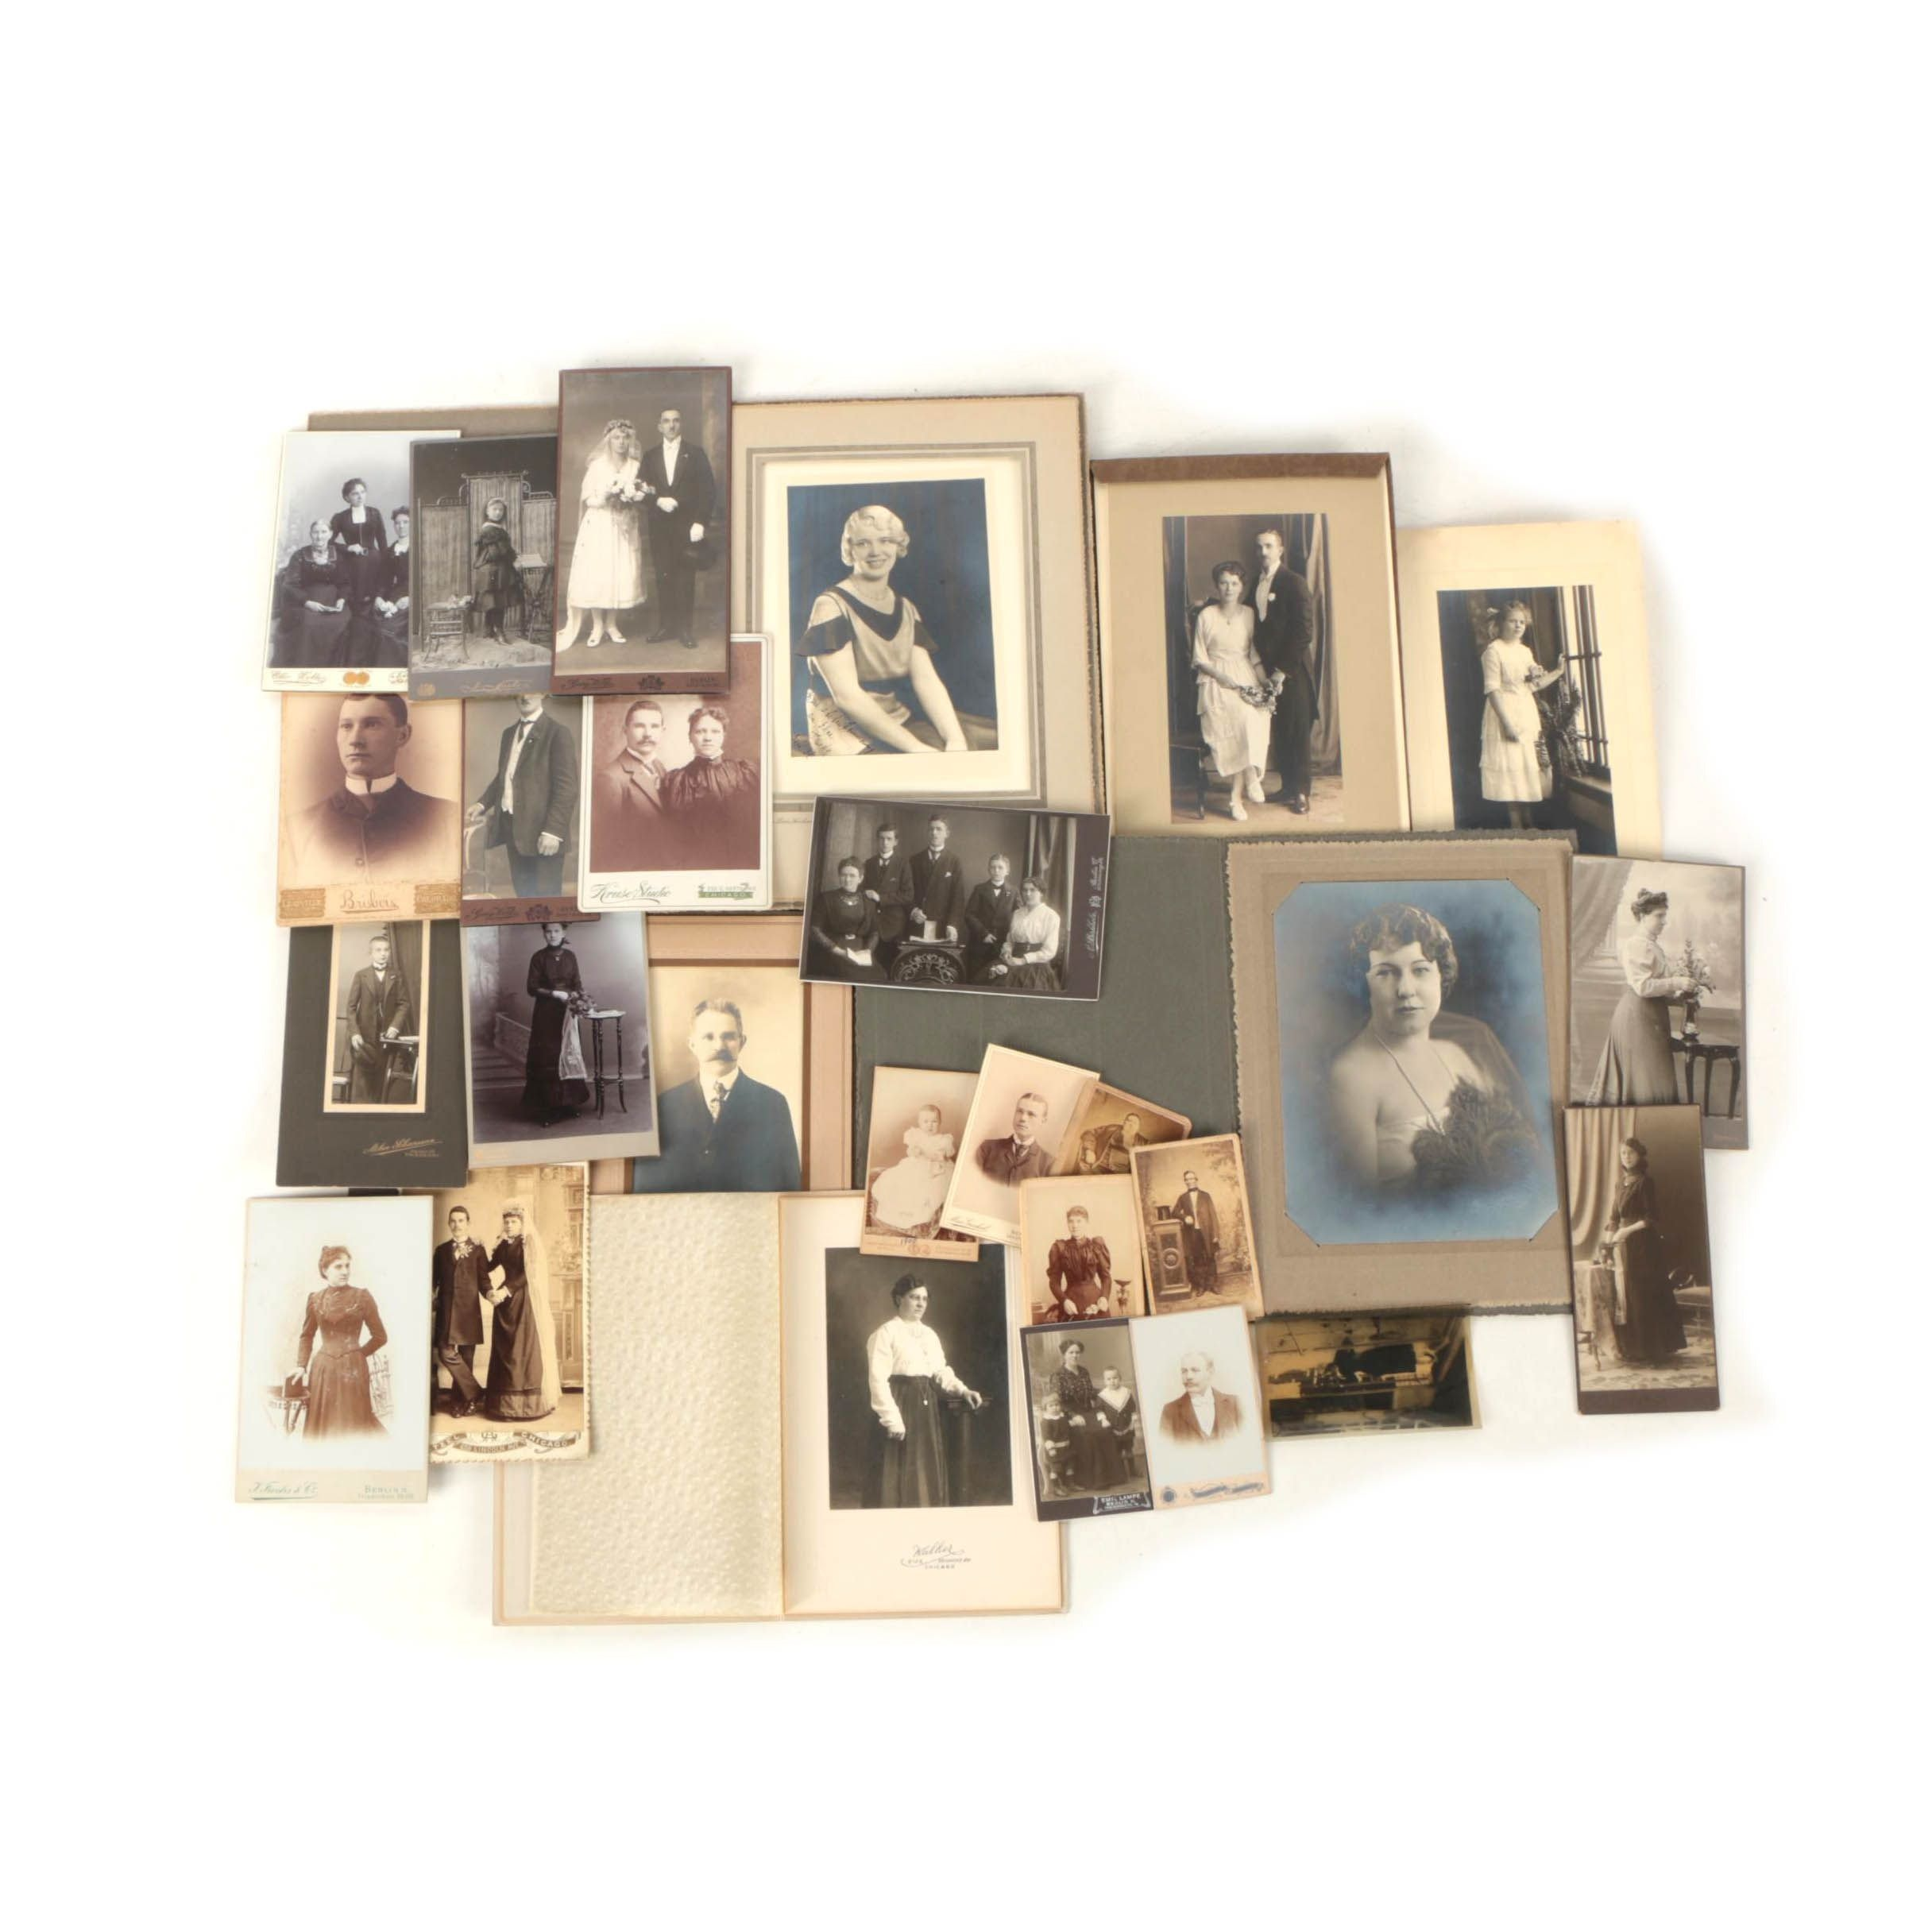 Formal Portraits, Cabinet Cards, and Cartes de Visite Featuring Celebrity